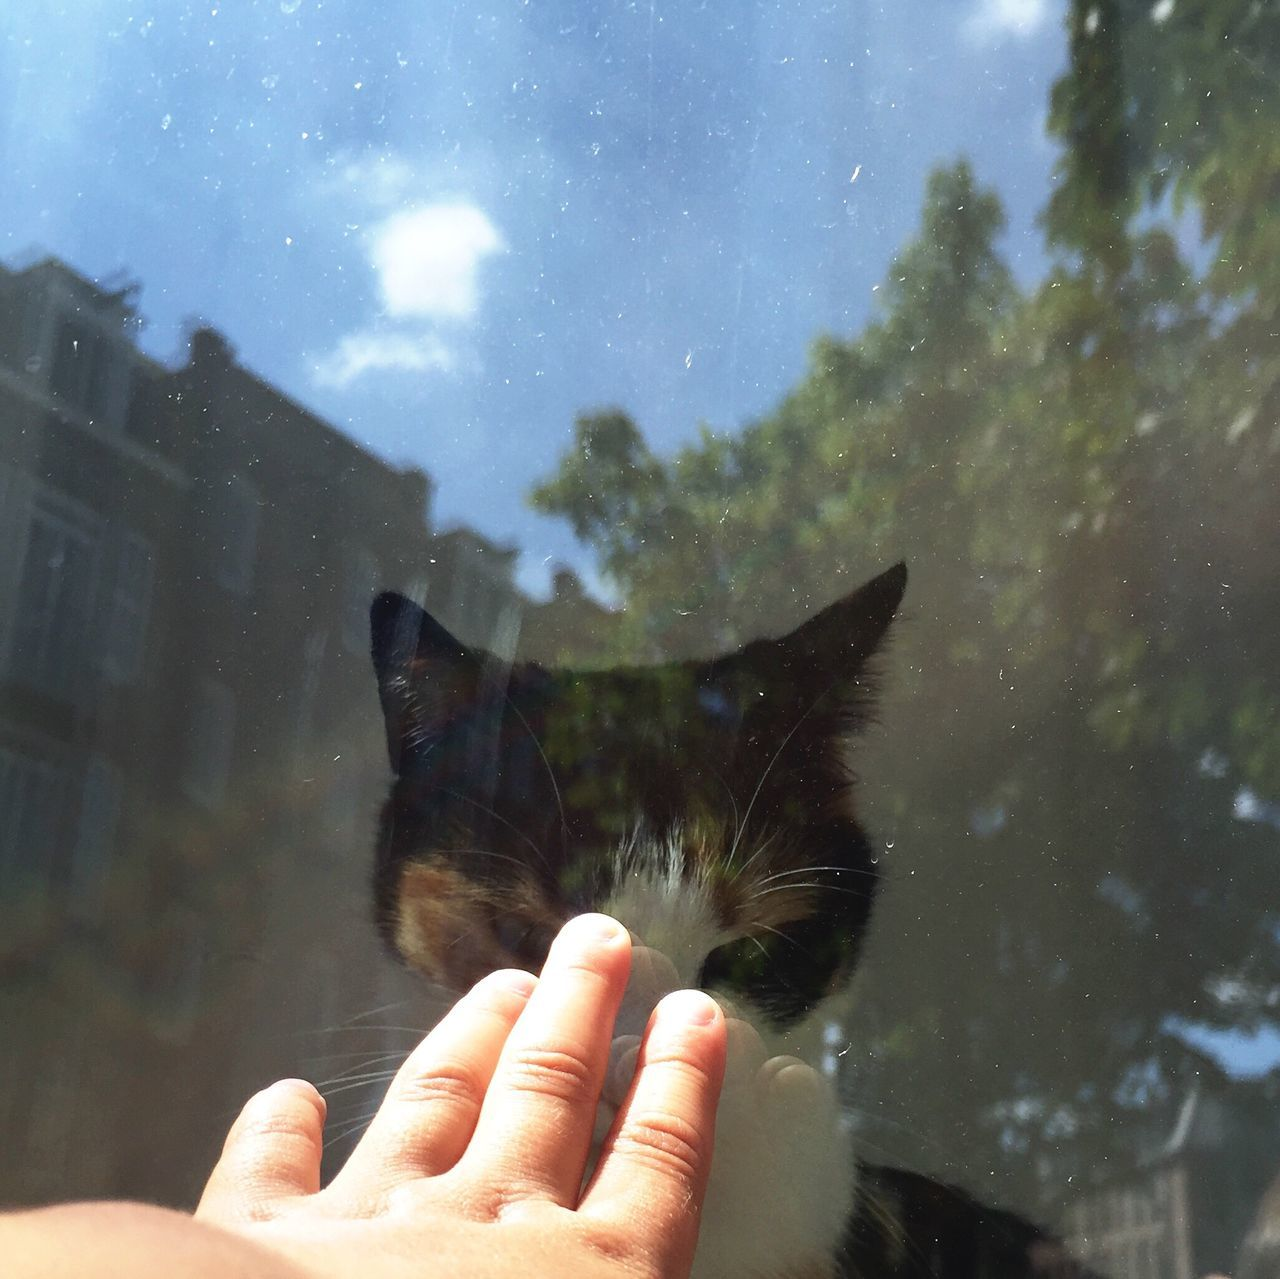 Close-Up Of Person Touching Glass Against Cat